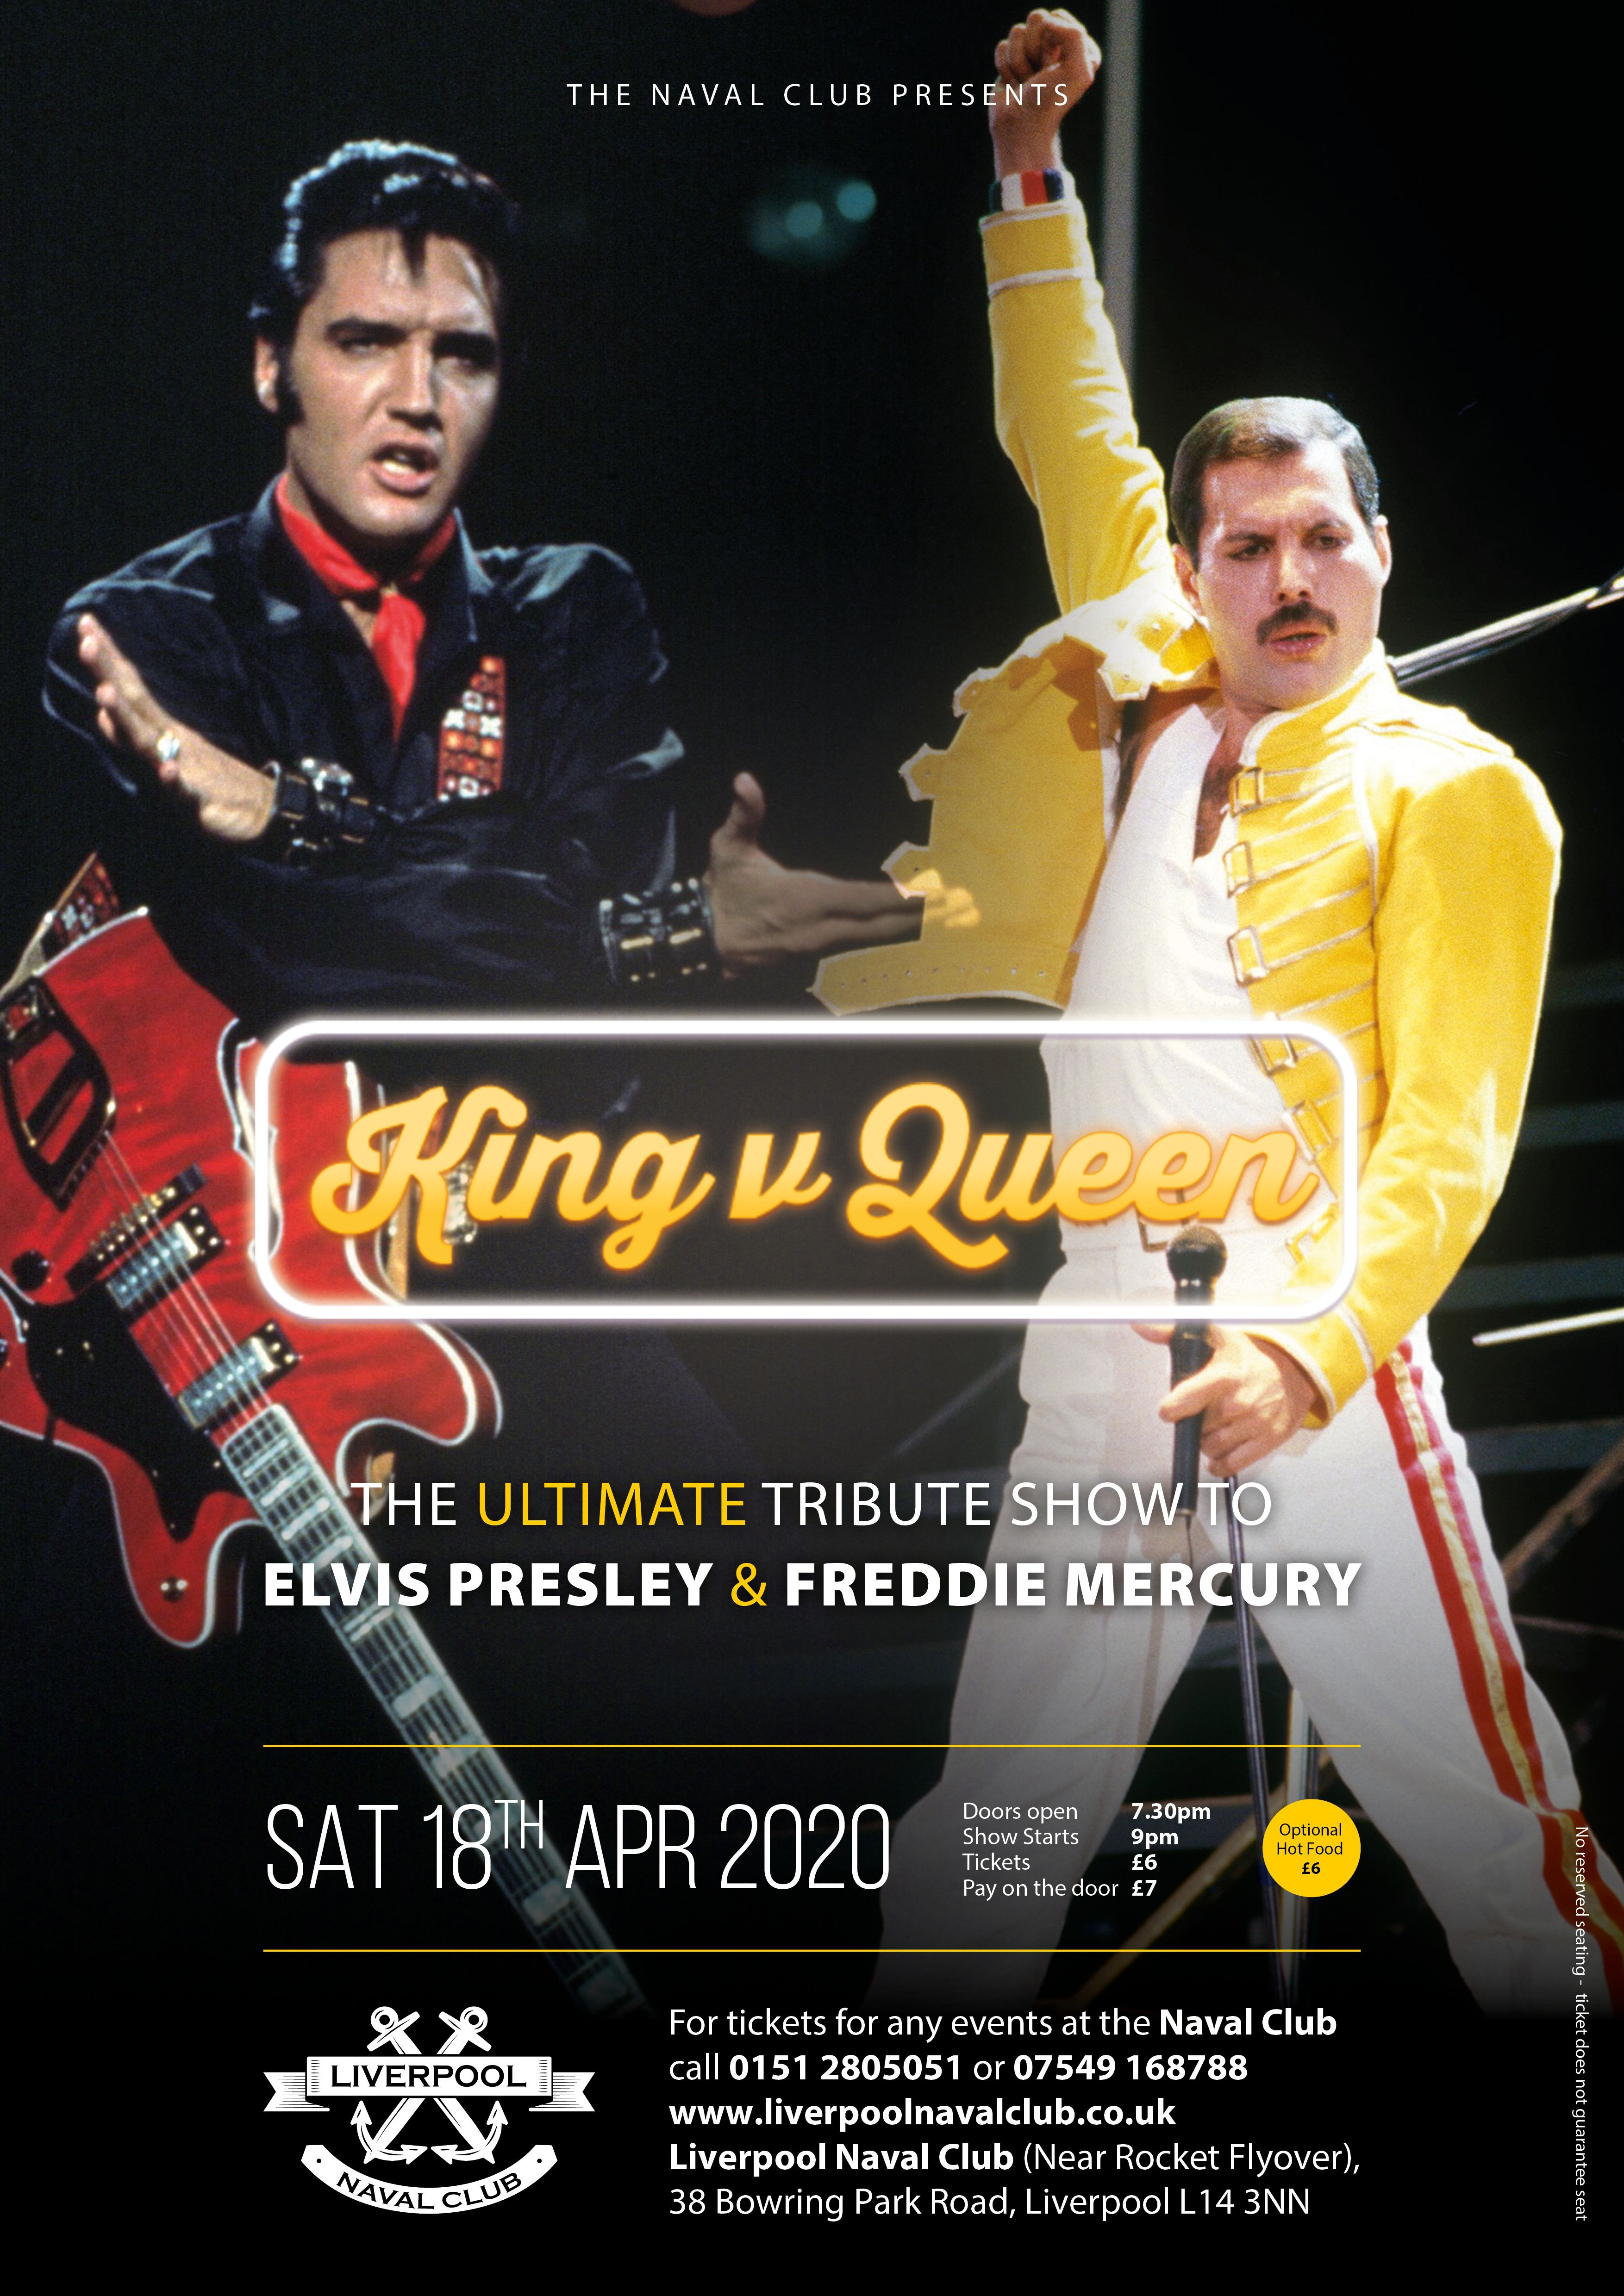 KING v QUEEN The Ultimate Tribute Show to Freddie Mercury & Elvis Presley